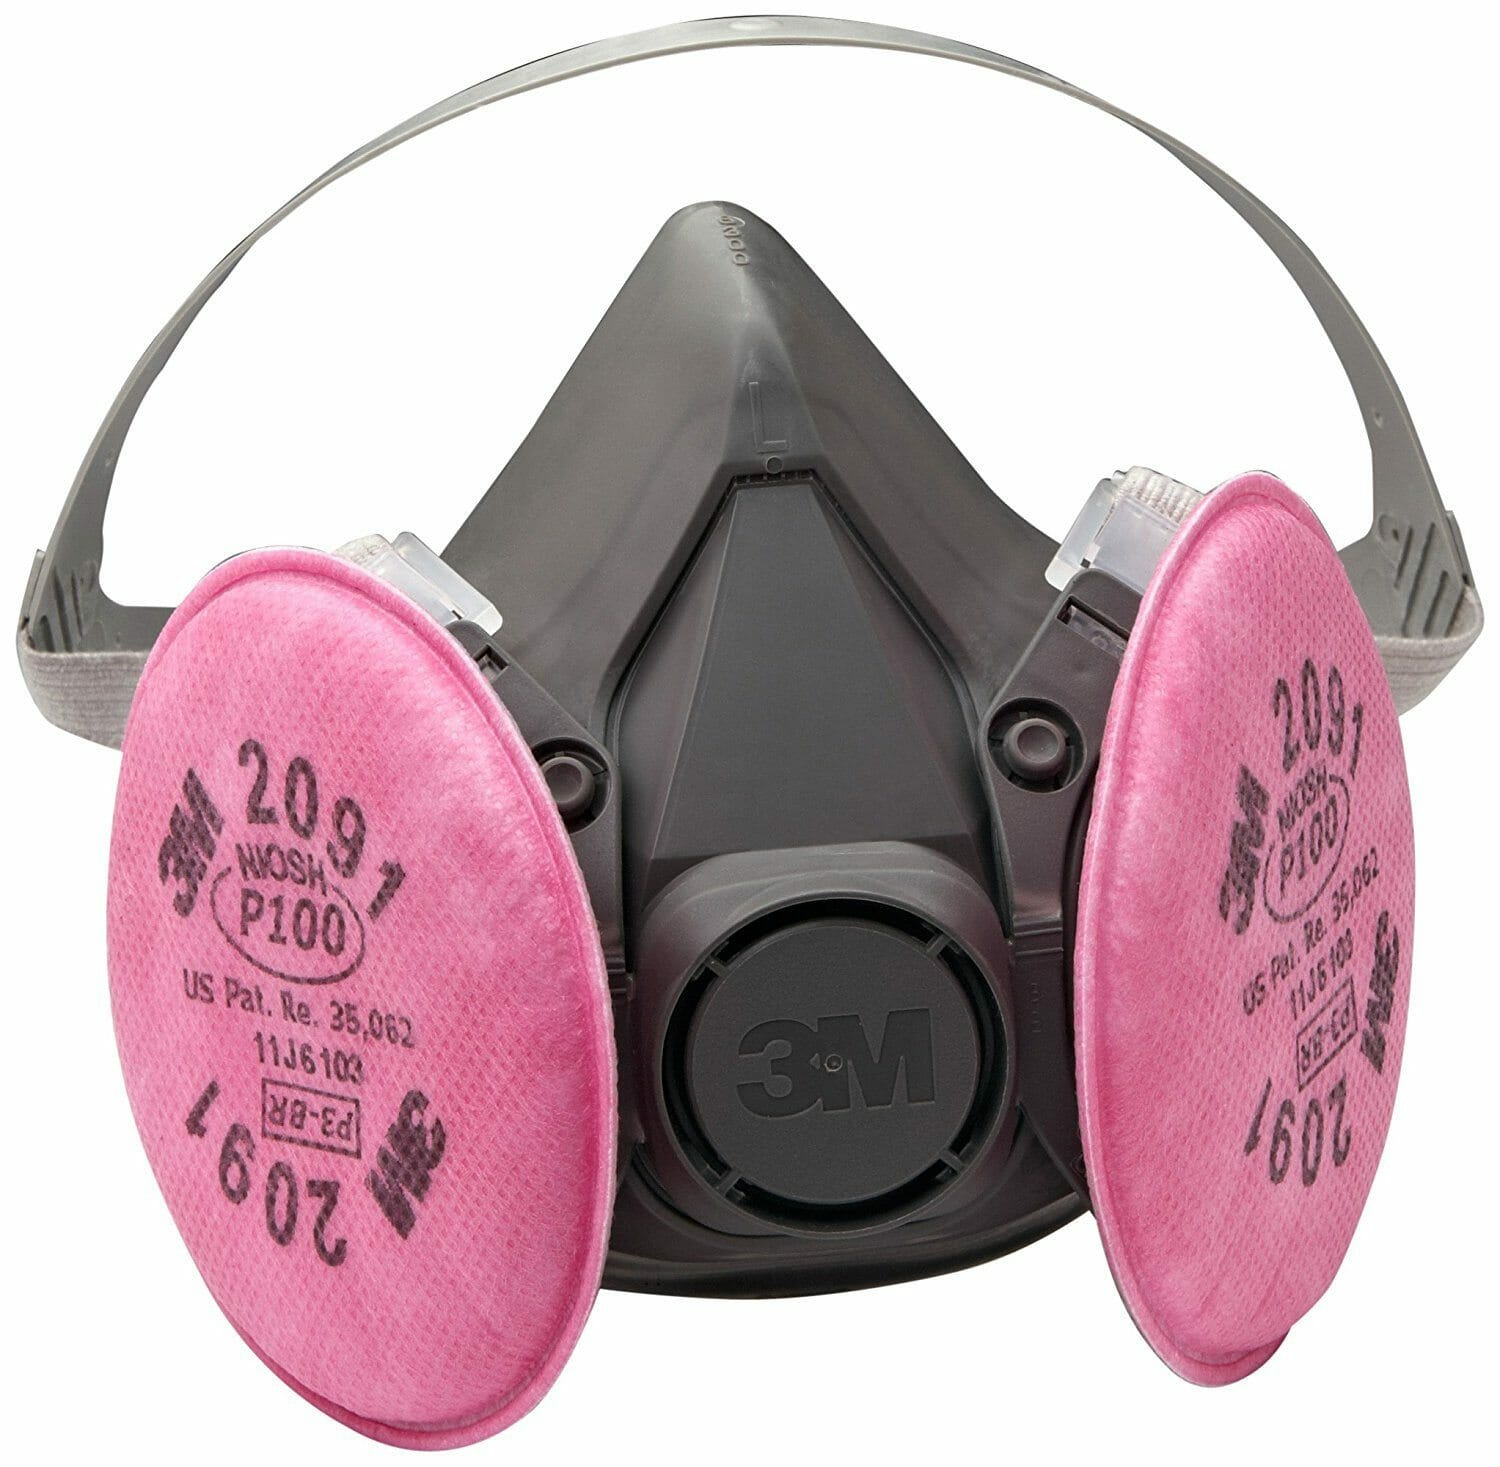 Respiratory Mask 5 Best Welding Respirator Reviews 2019 Edition In Depth